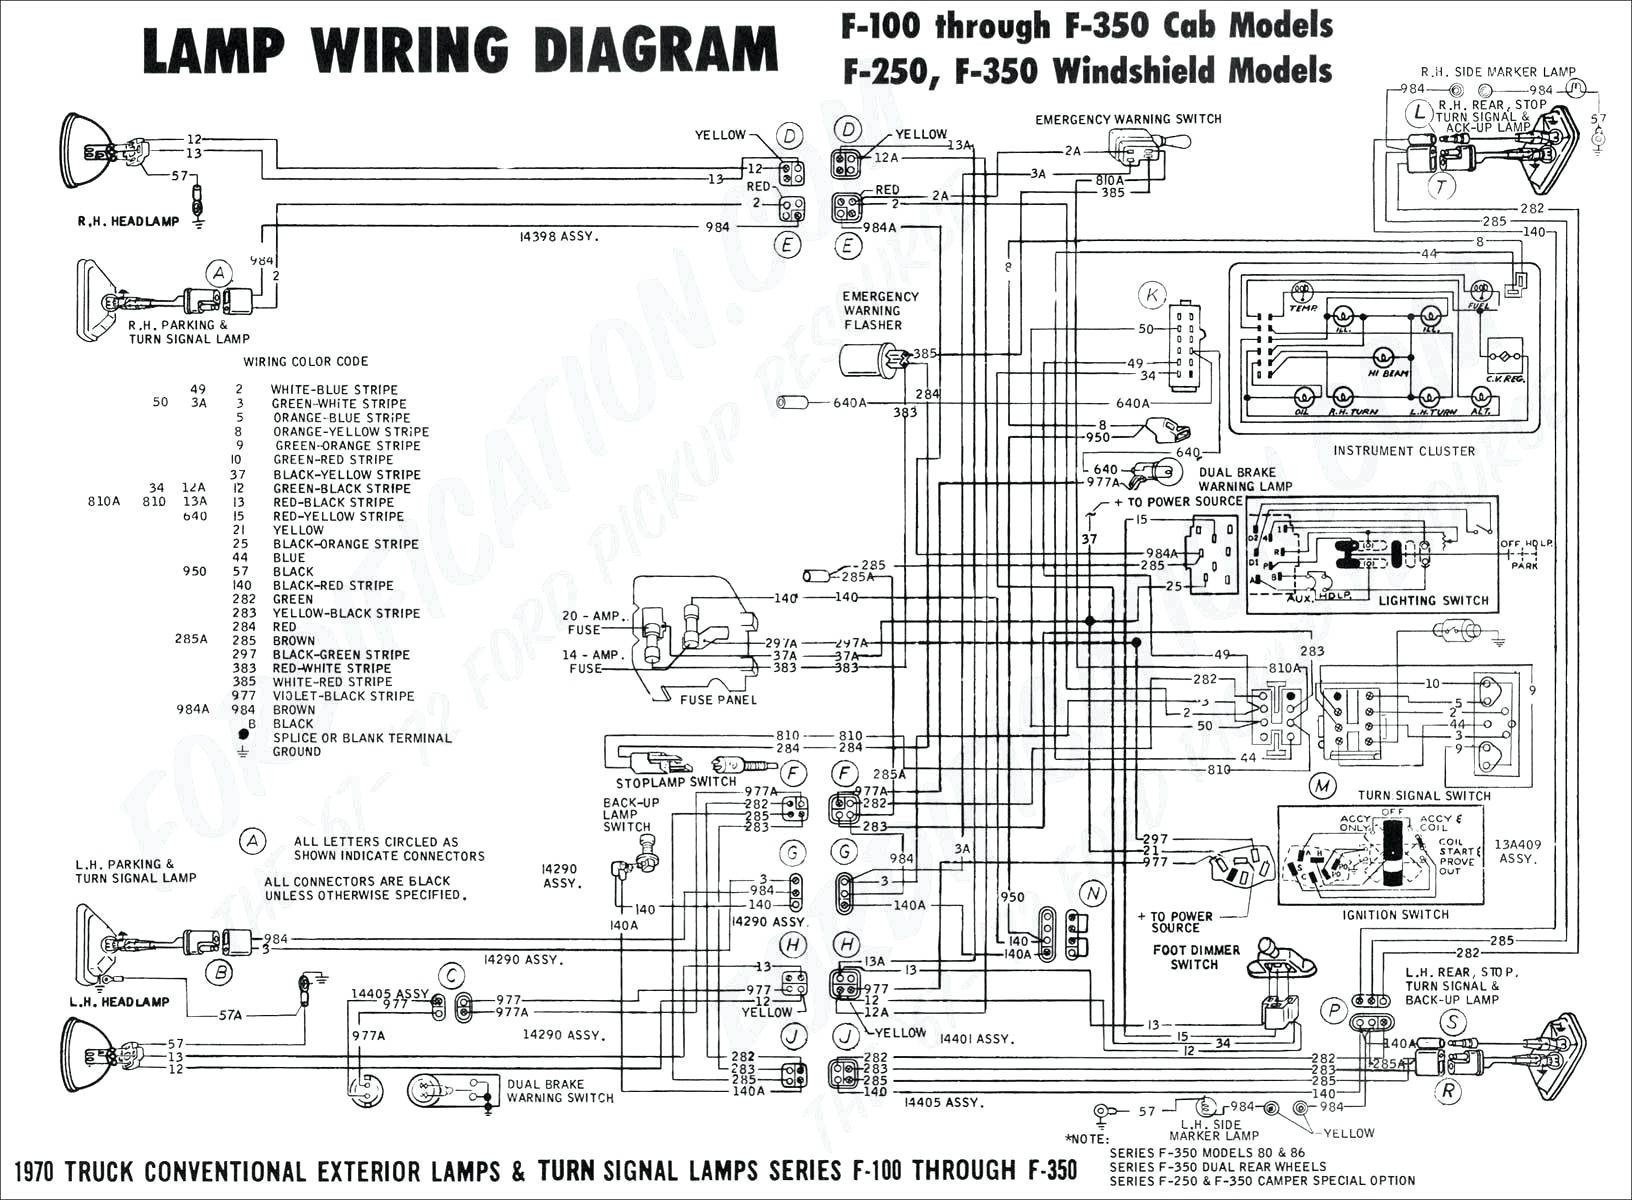 Simple Motorcycle Wiring Diagram Honda Beat Motorcycle Wiring Diagram Refrence Honda Beat Motorcycle Of Simple Motorcycle Wiring Diagram